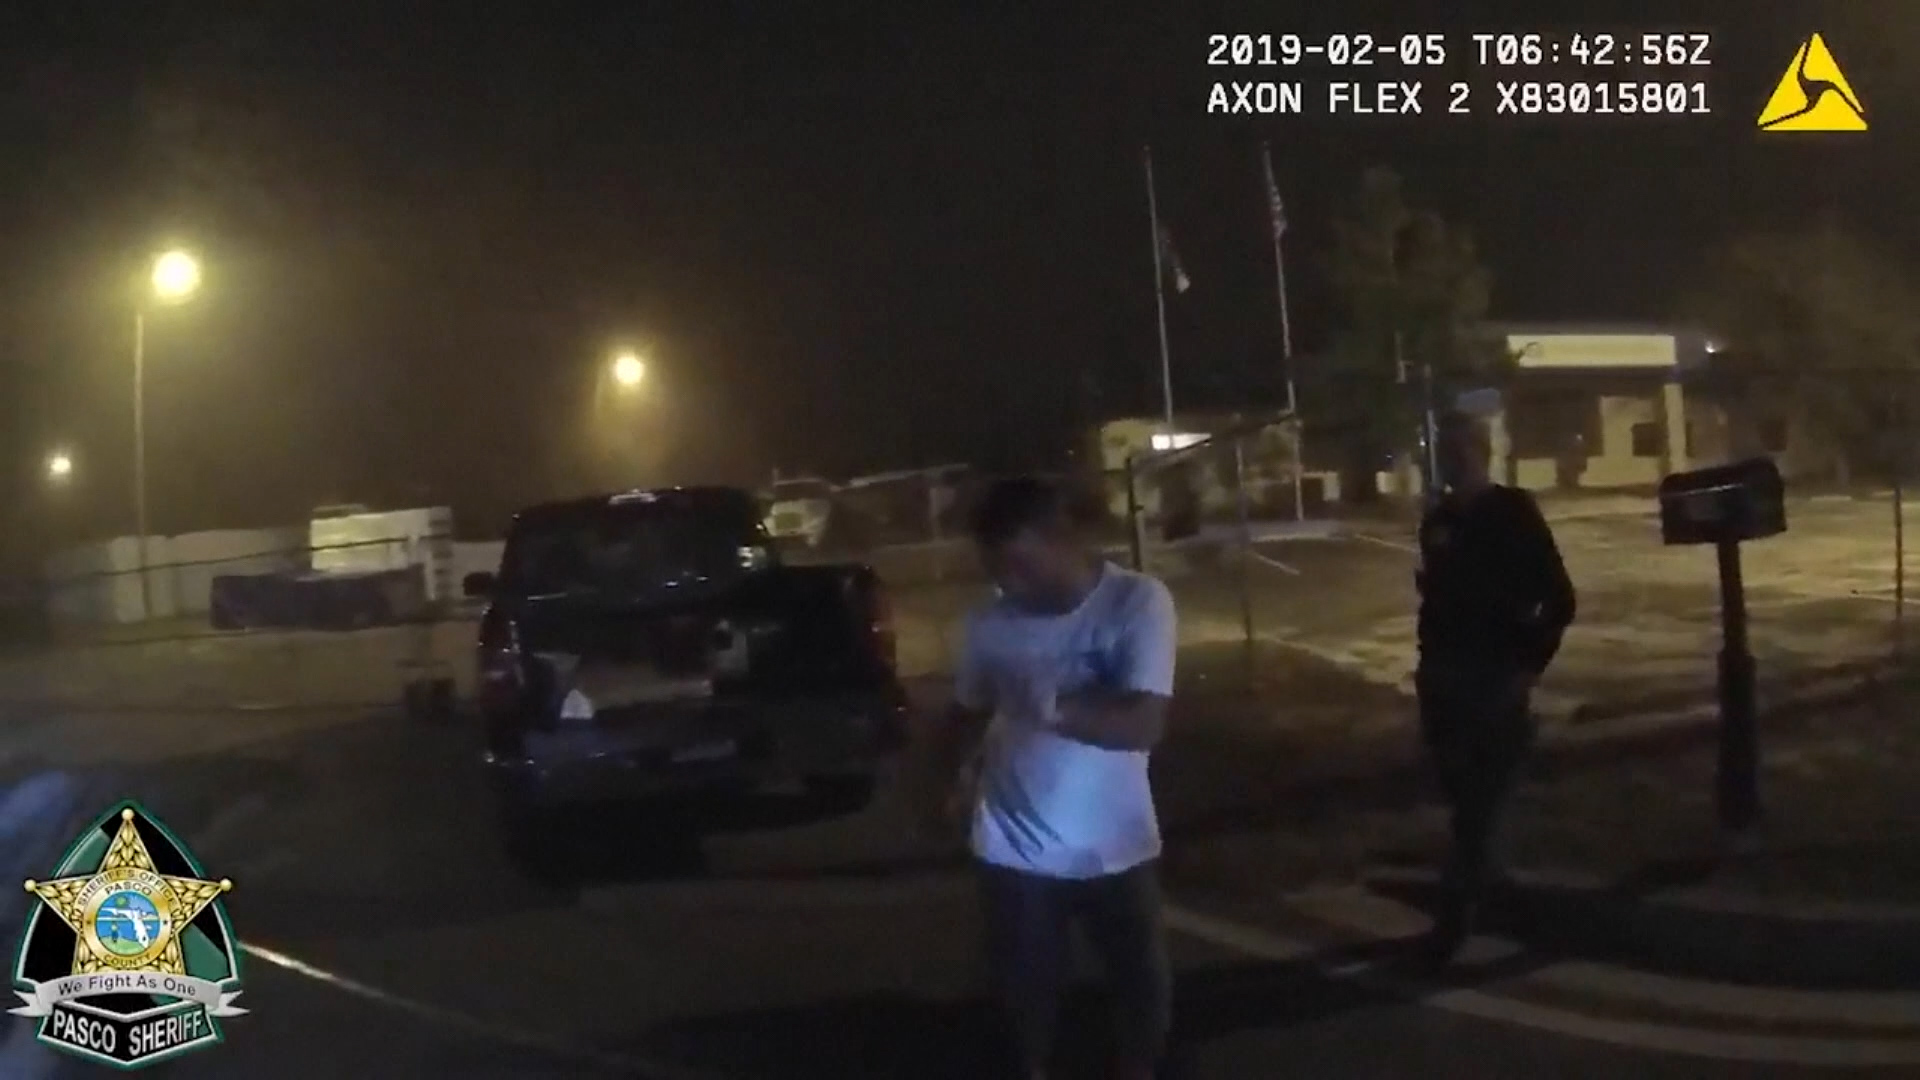 Suspected DUI driver dances throughout sobriety test in Florida